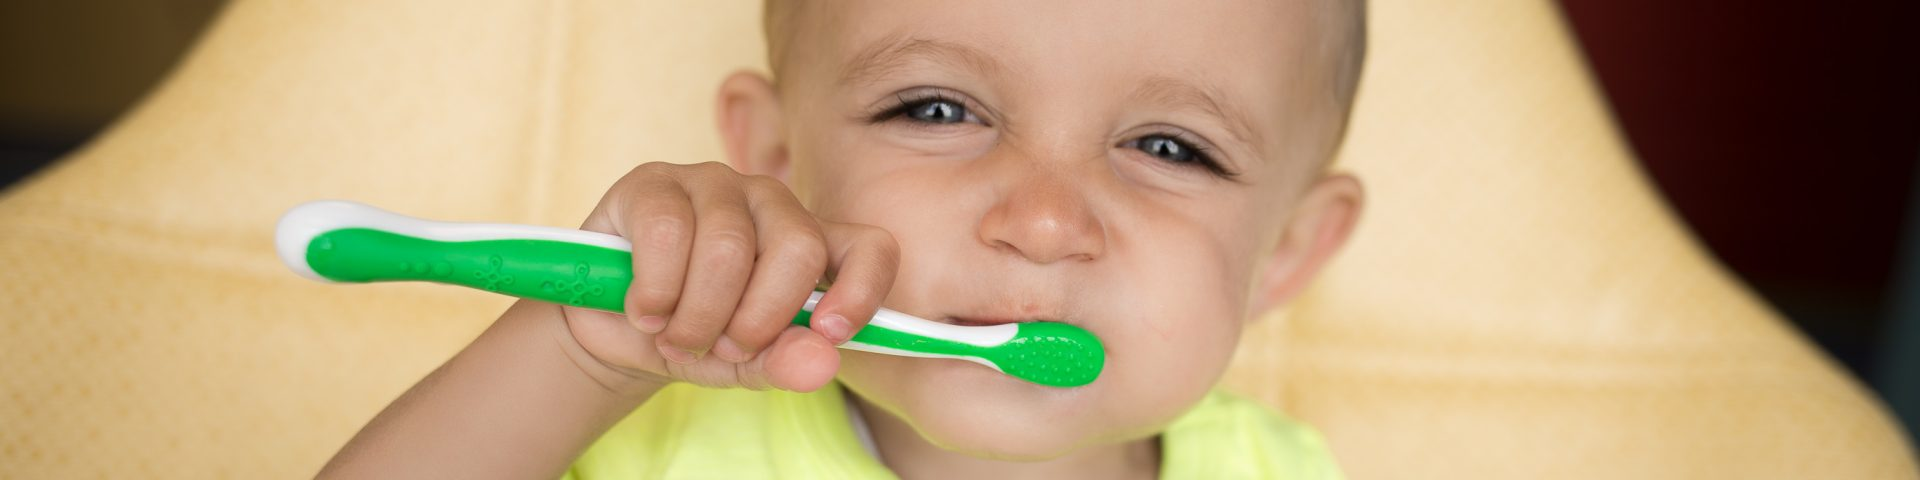 Pediatric dentistry in Hudson, WI